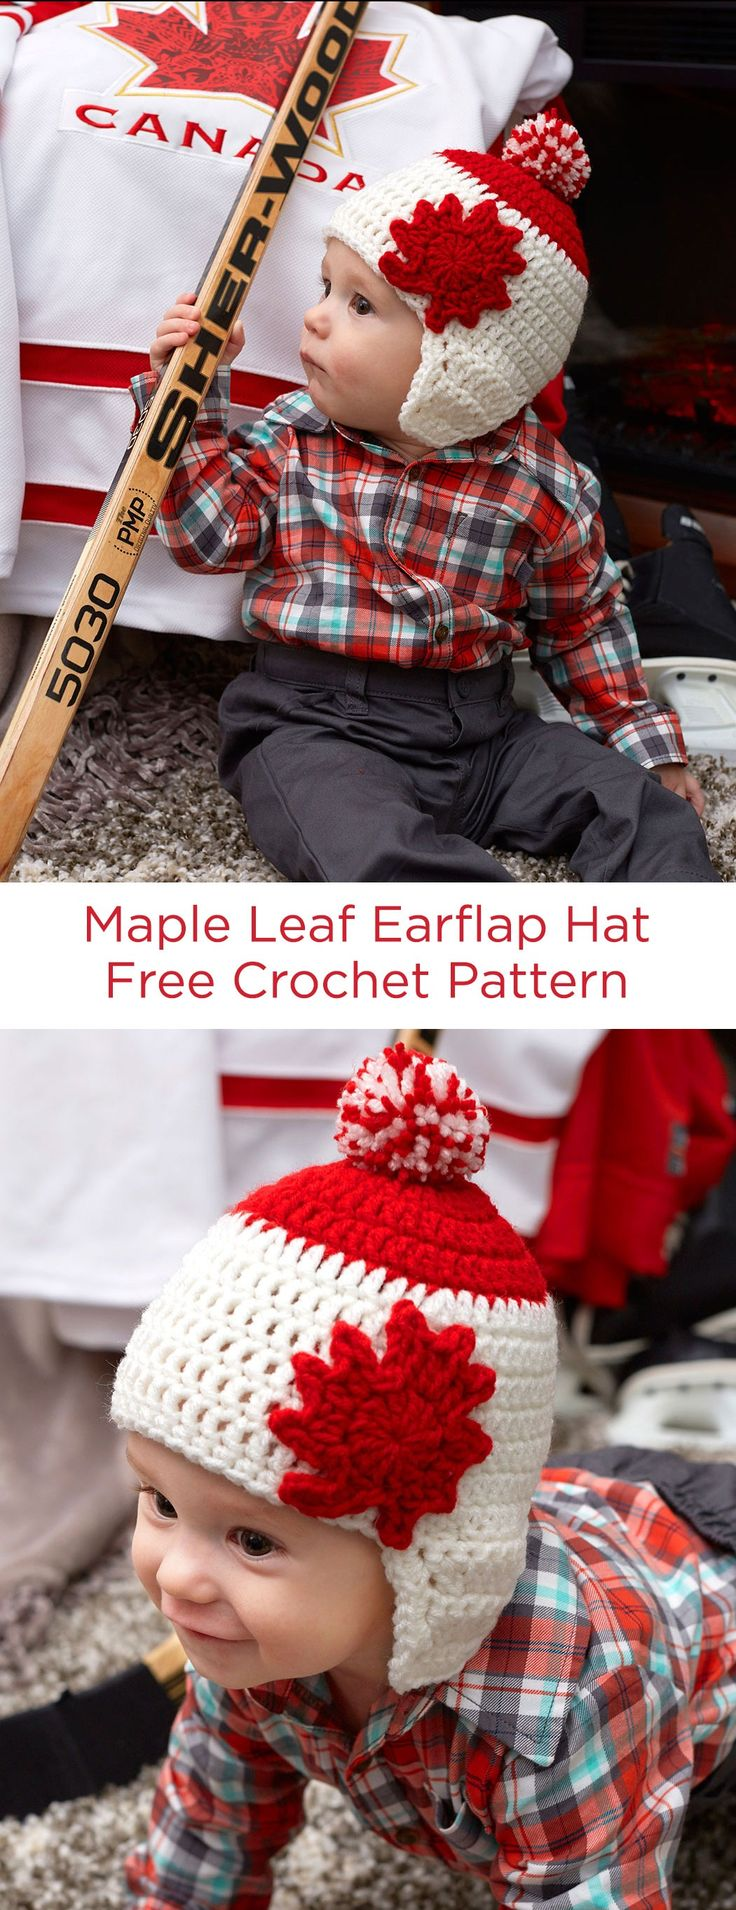 Maple Leaf Earflap Hat Free Crochet Pattern in Red Heart Yarns -- Even the youngest members of the family will be part of a Canada celebration with this crocheted hat! Pattern is for three child sizes and features a maple leaf appliqué and pompom.